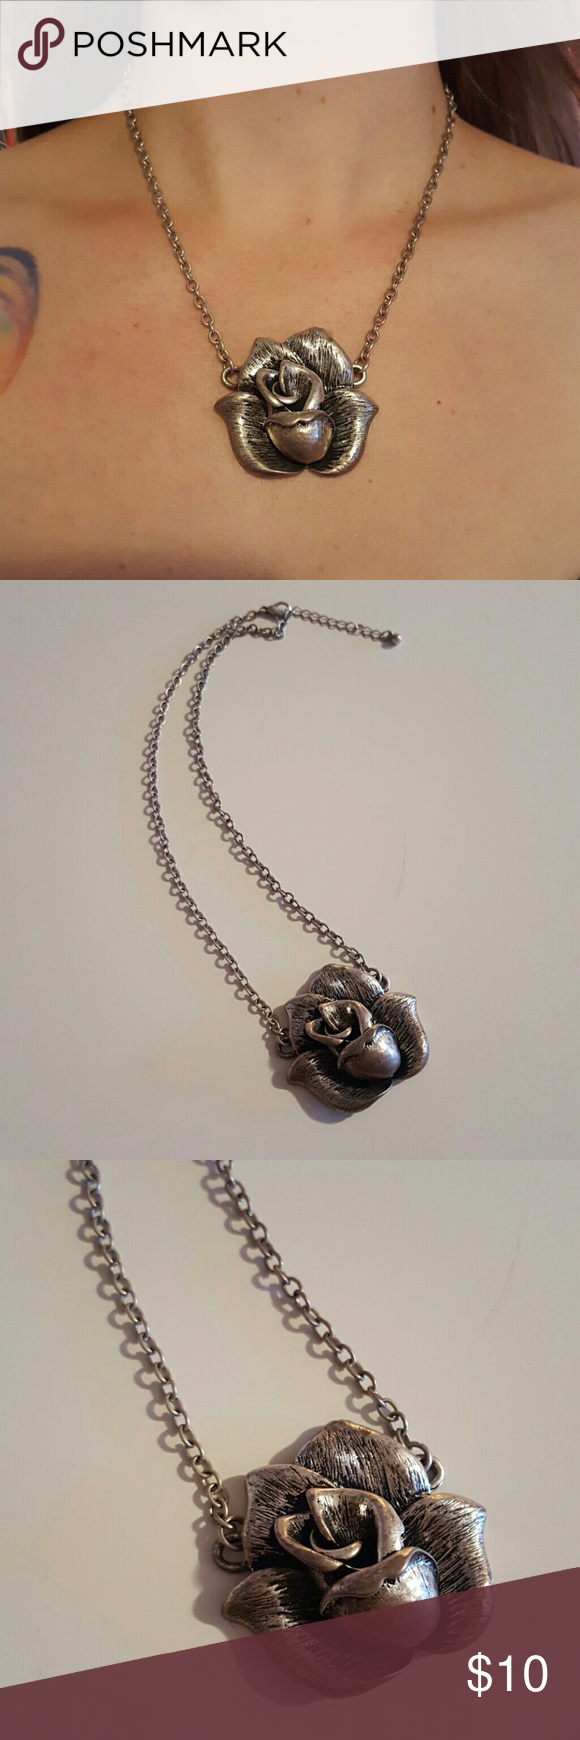 """Rose necklace 3D rose necklace. 2"""" extender. 18"""" chain. Beautiful piece. Jewelry Necklaces"""